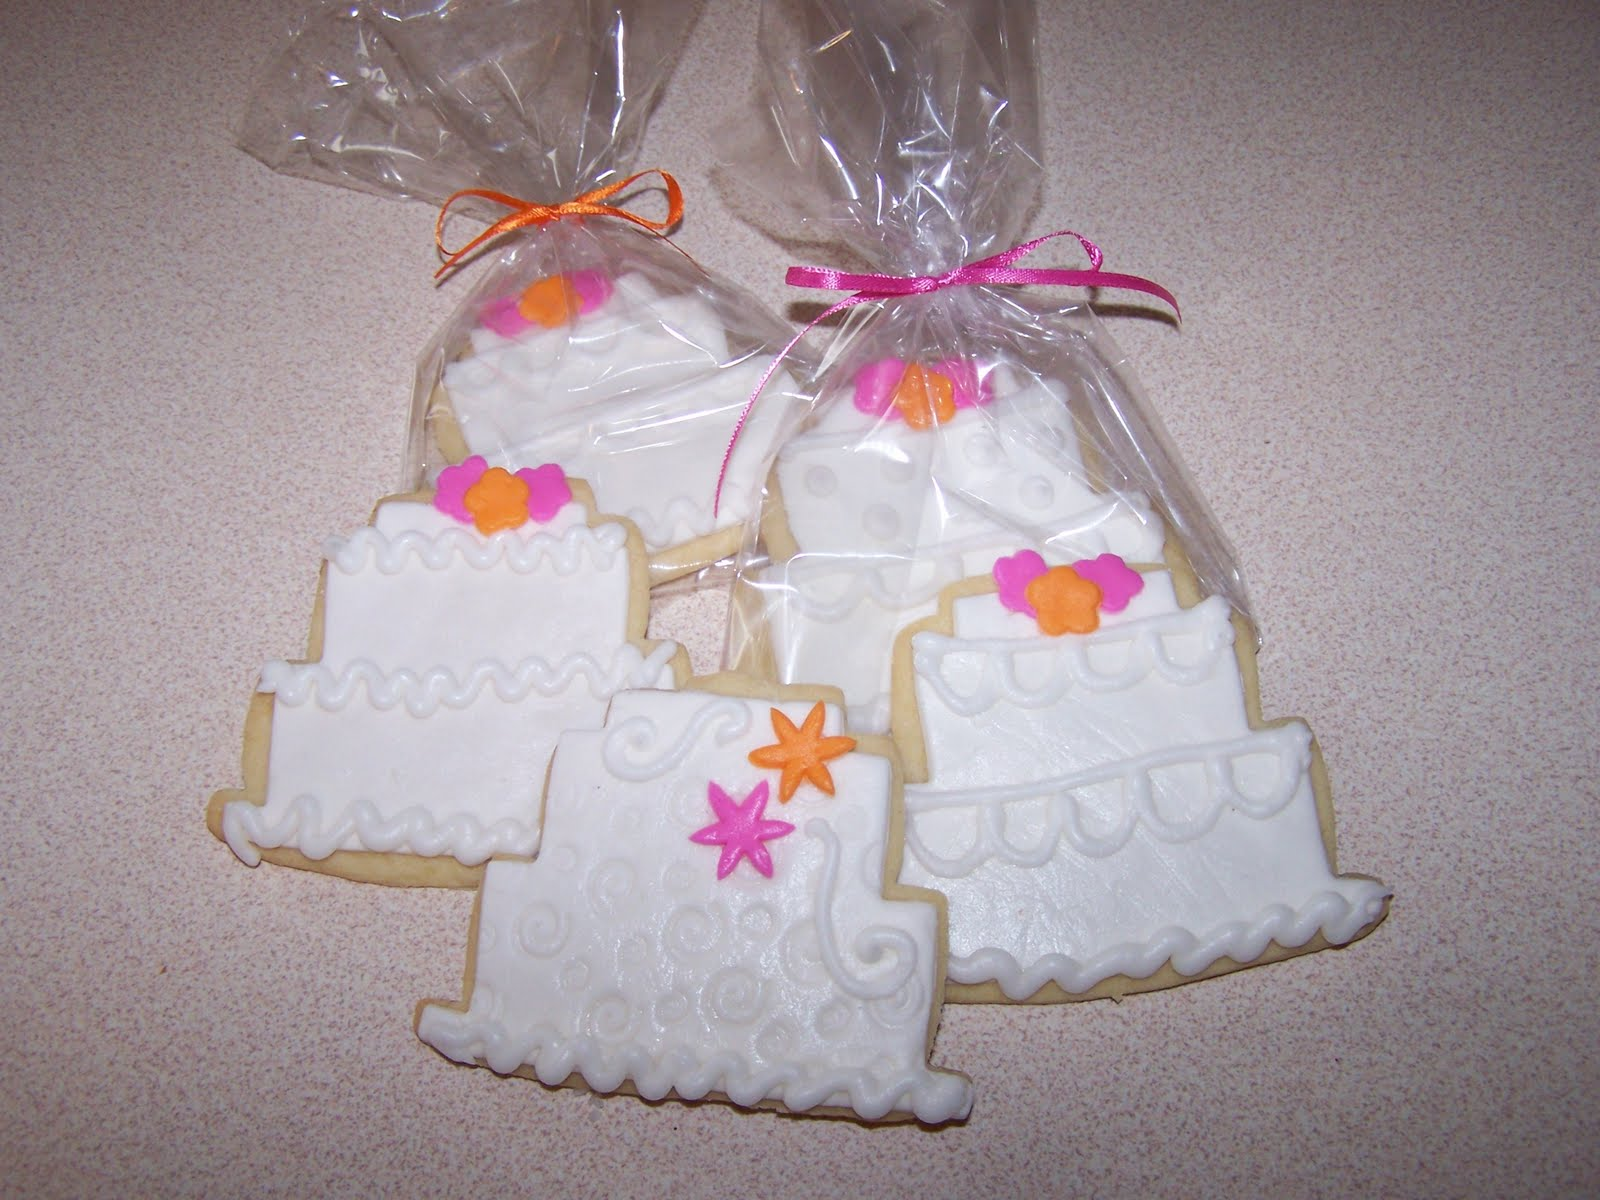 Julie Daly Cakes: Wedding Cake Cookie Favors